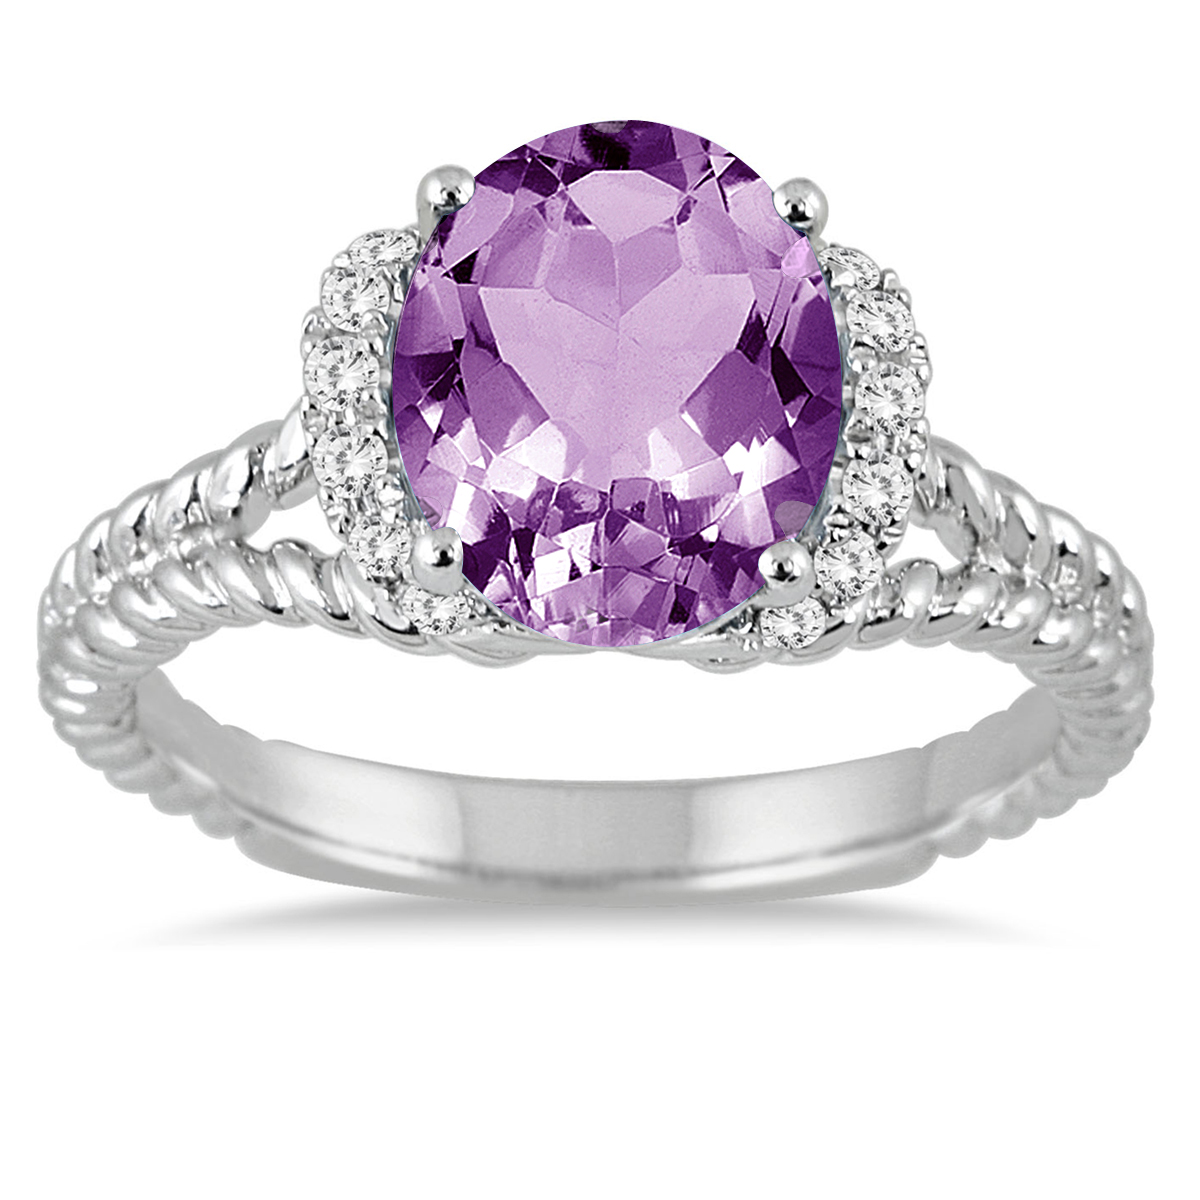 2 1/4 Carat Oval Amethyst and Diamond Ring in 14K White Gold